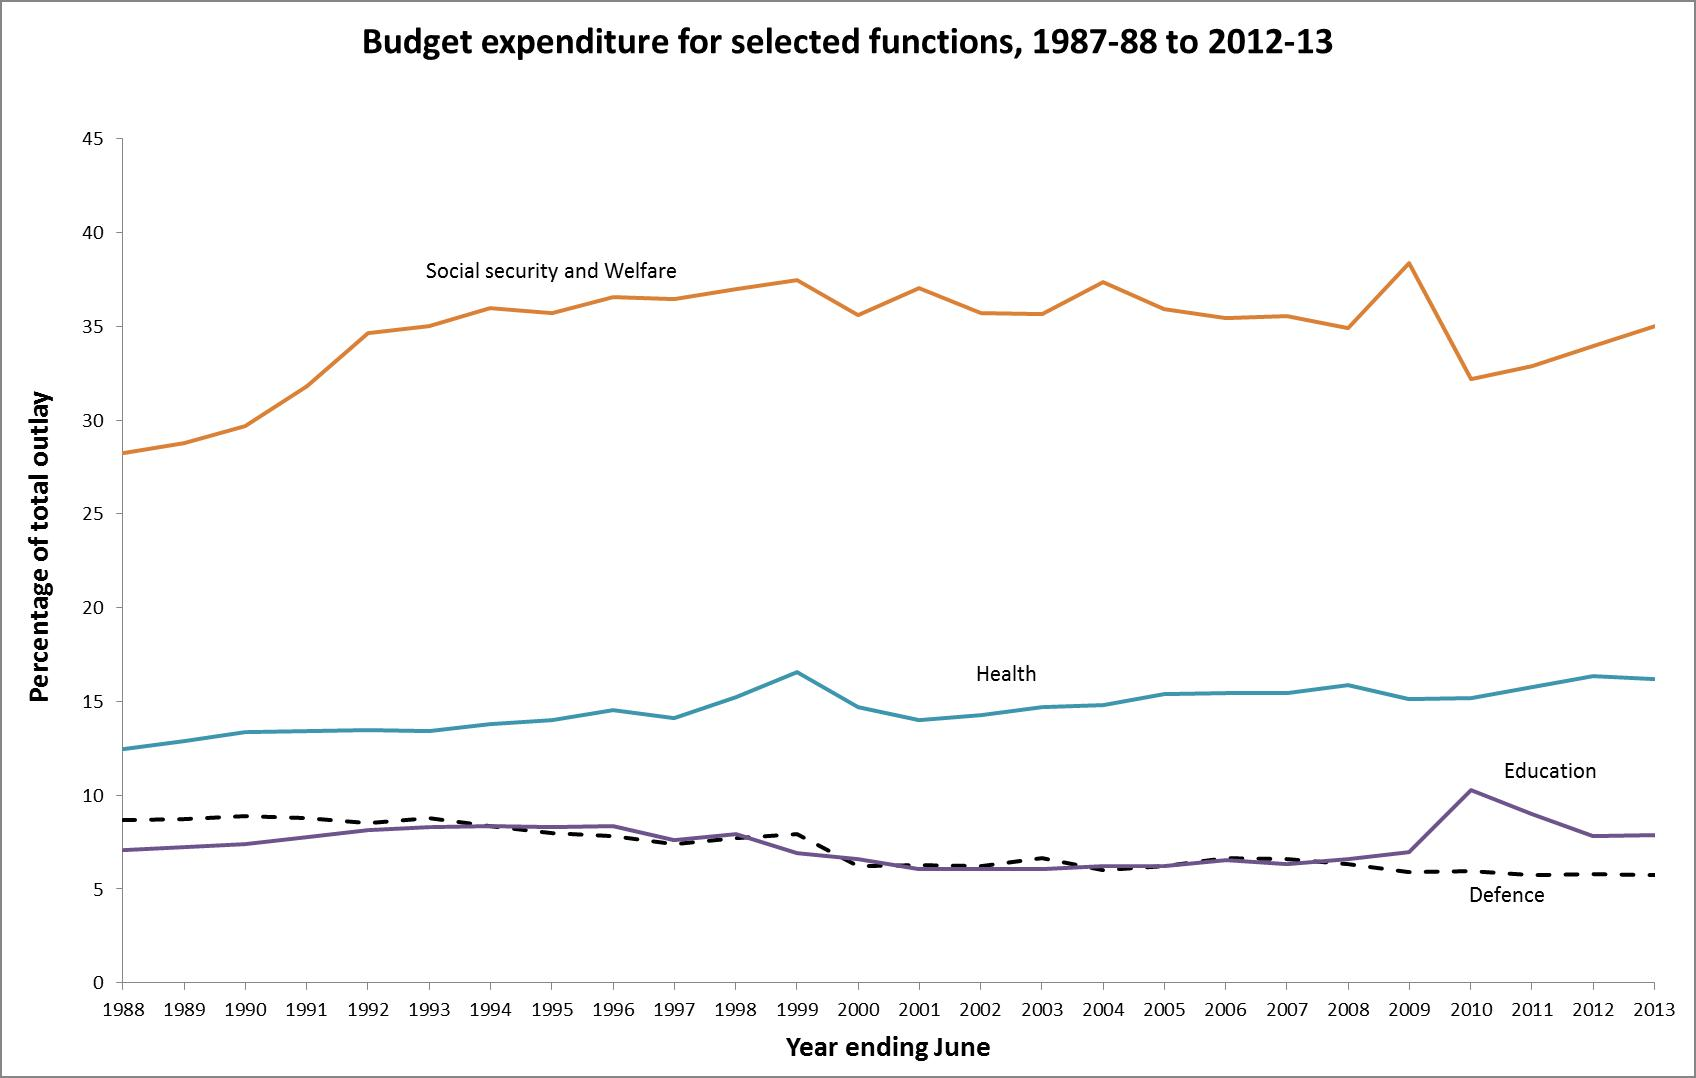 Graph 3: Budget expenditure for selected functions as a percentage of total outlays